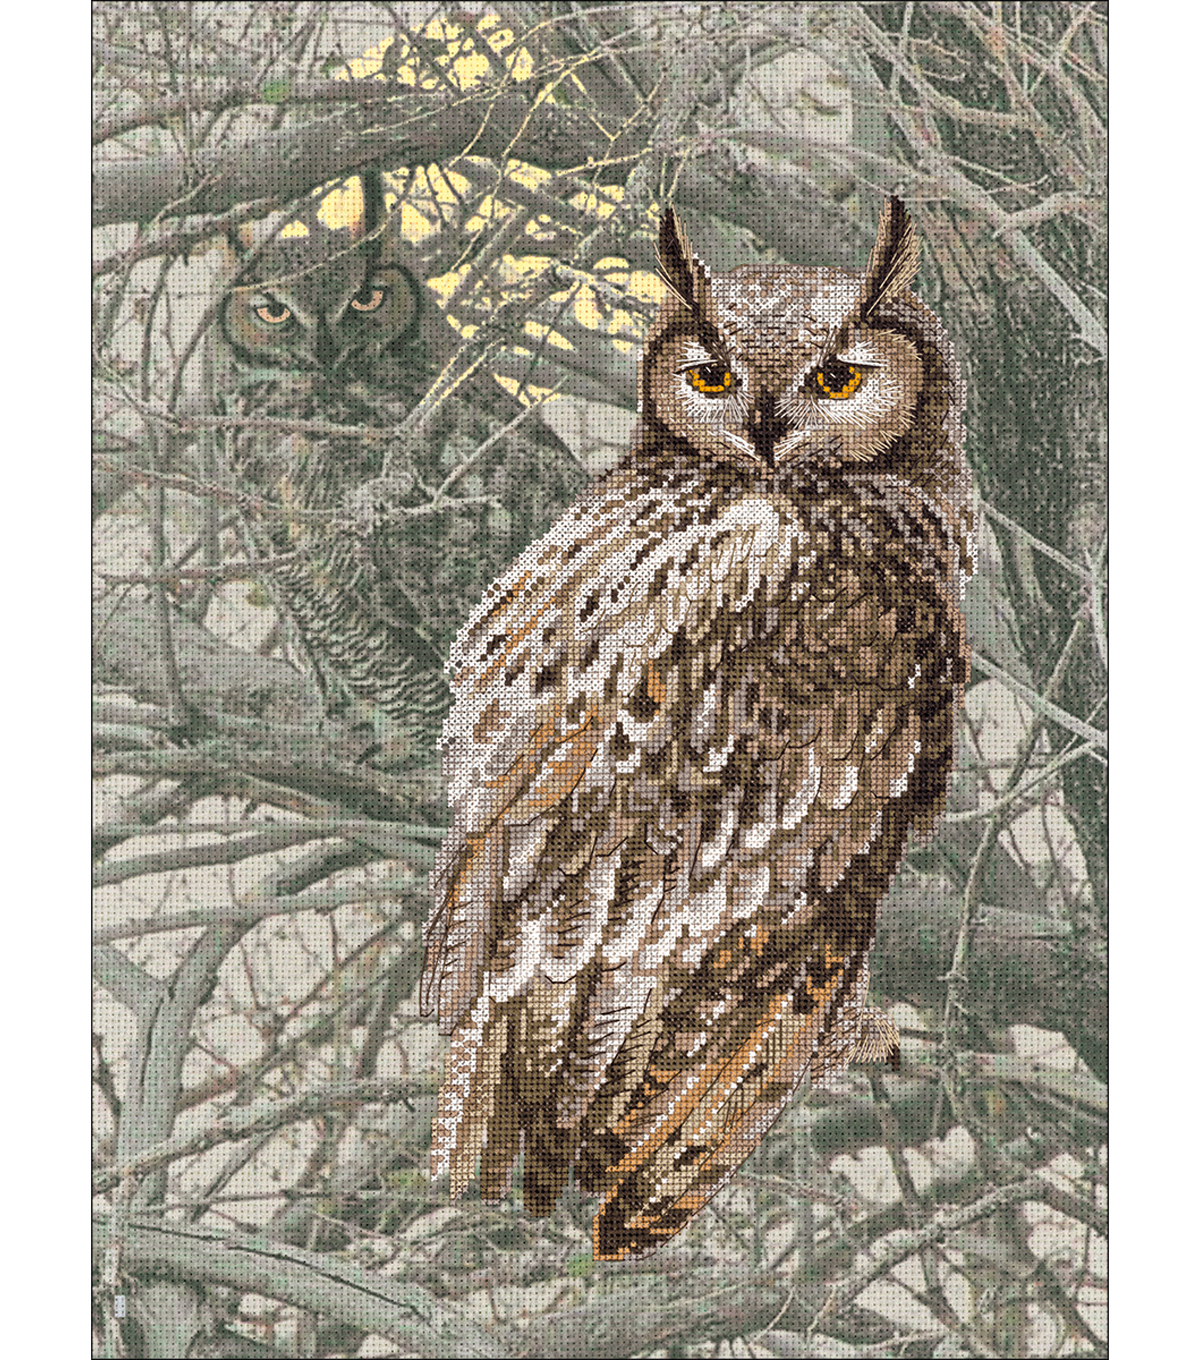 Eagle Owl Stamped Cross Stitch Kit 14 Count